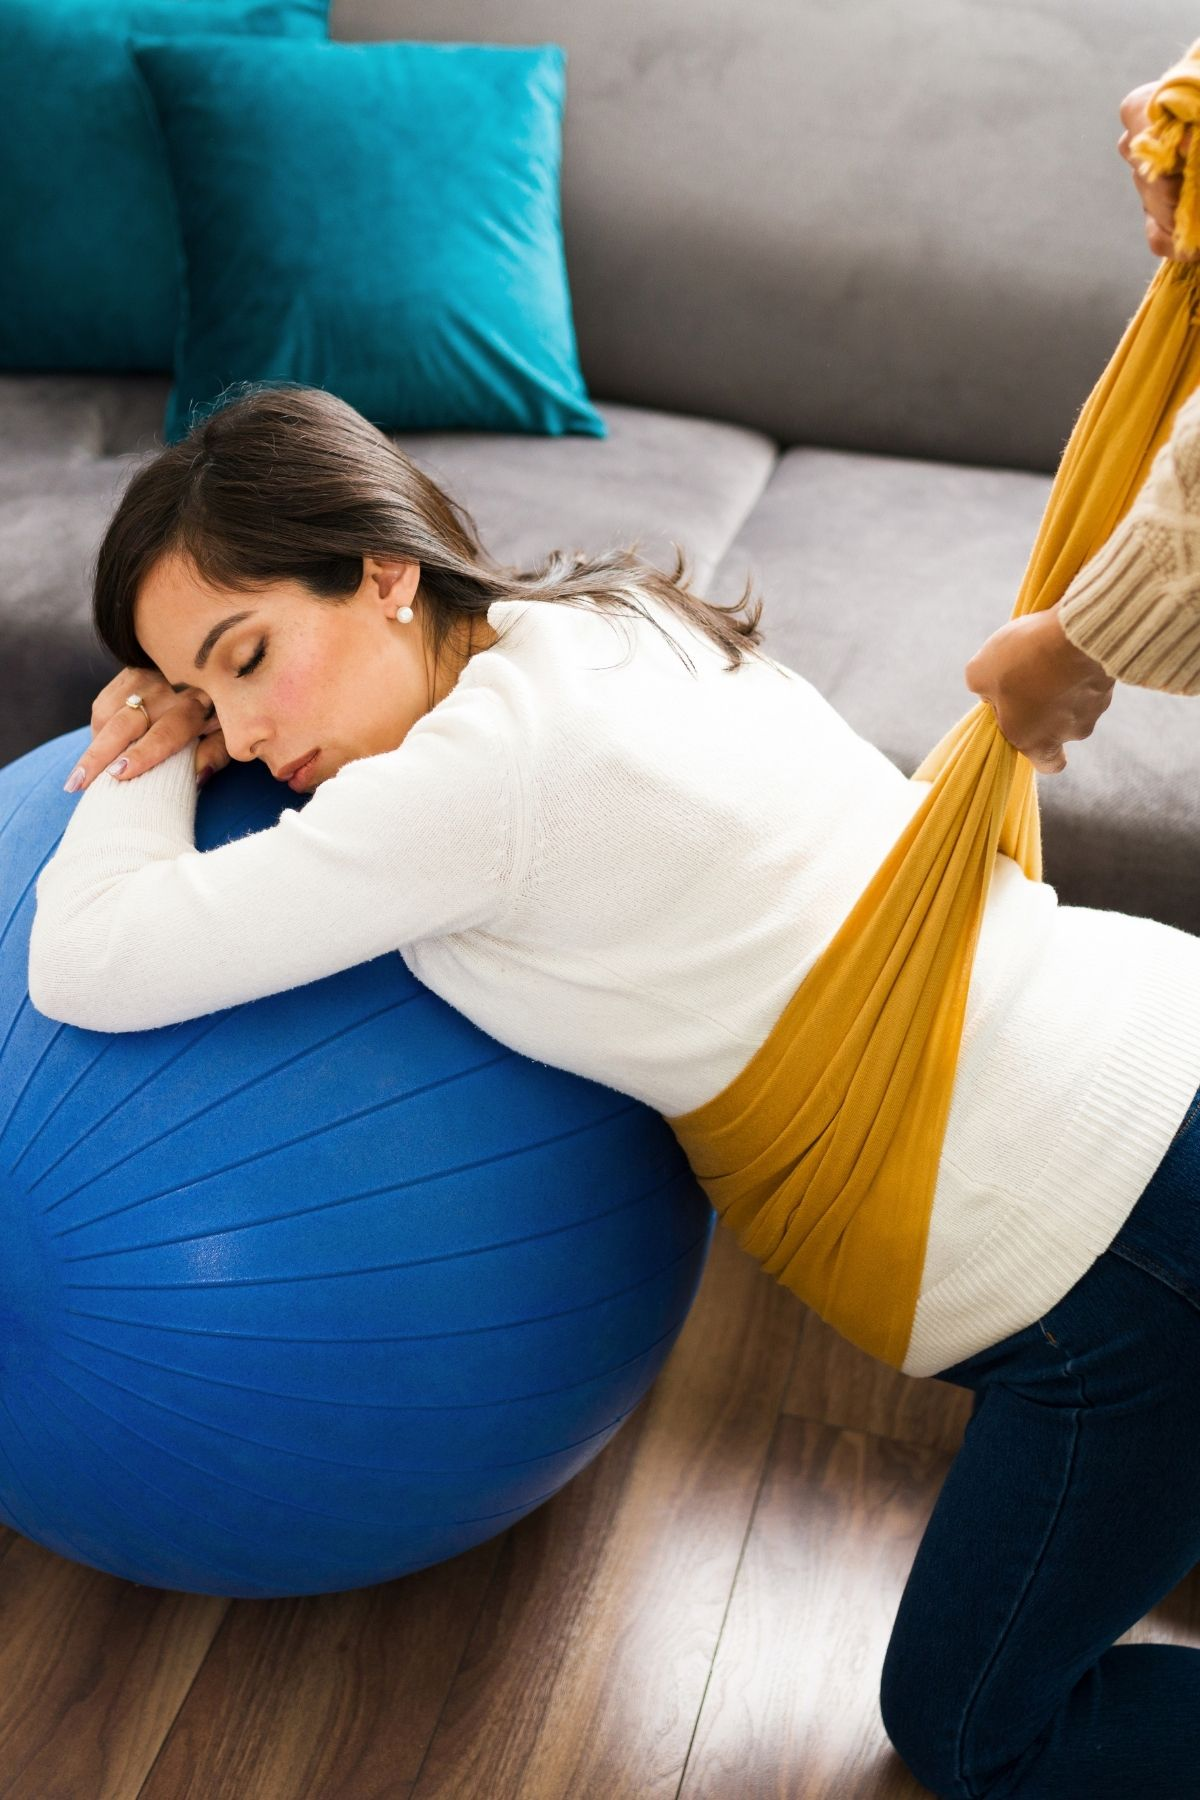 Woman leans over birthing ball while her midwife relieves her stomach pain with rebozo scarf.